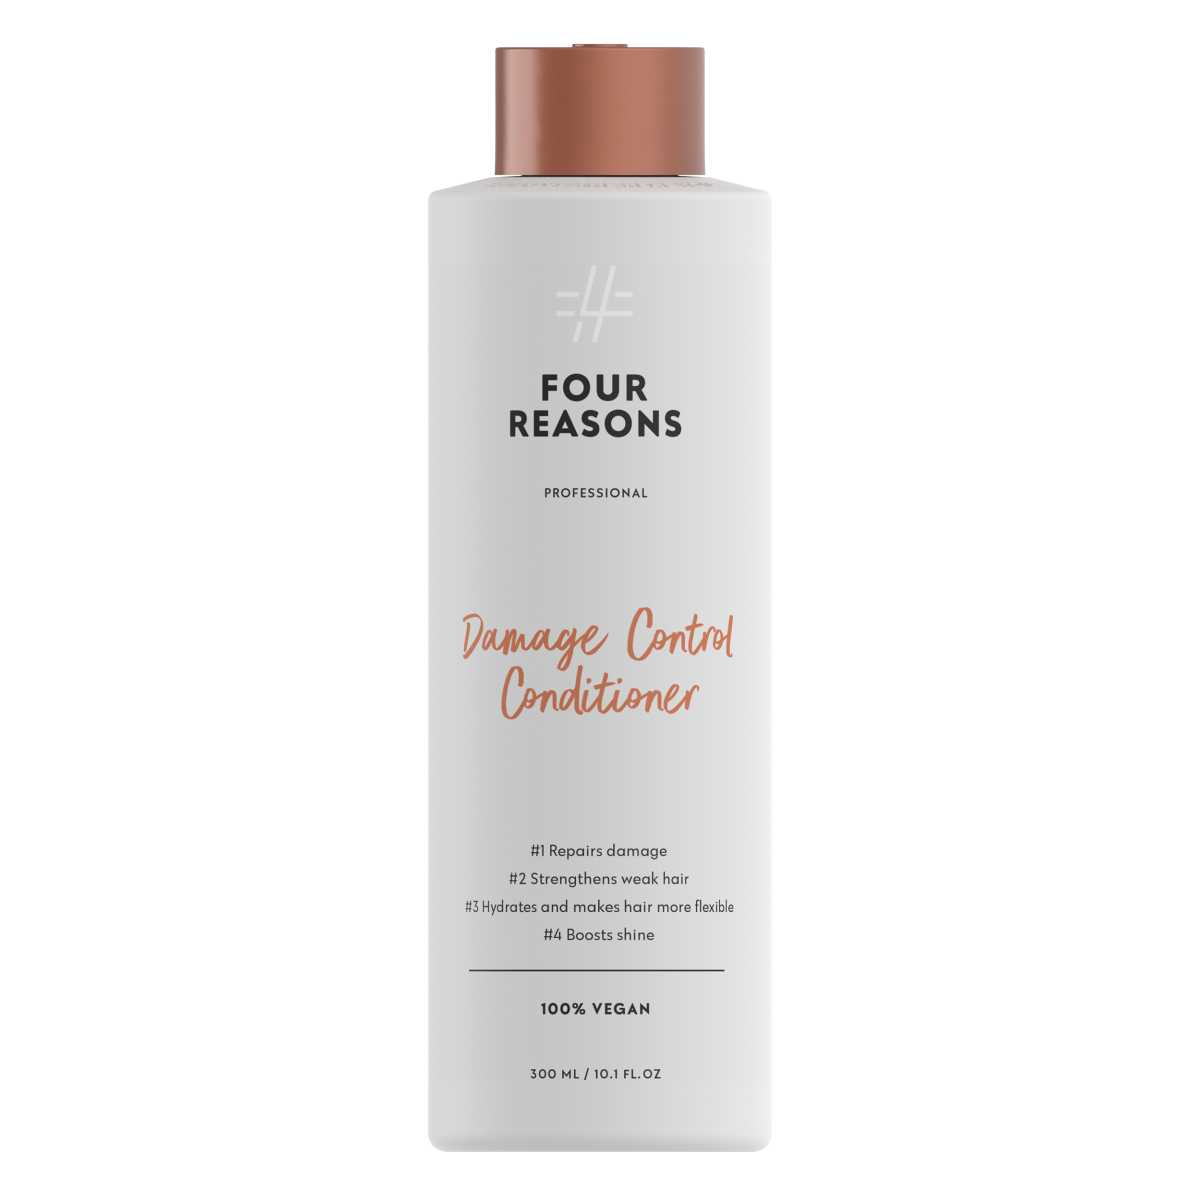 Four-Reasons-Professional-Damage-Control-Conditioner